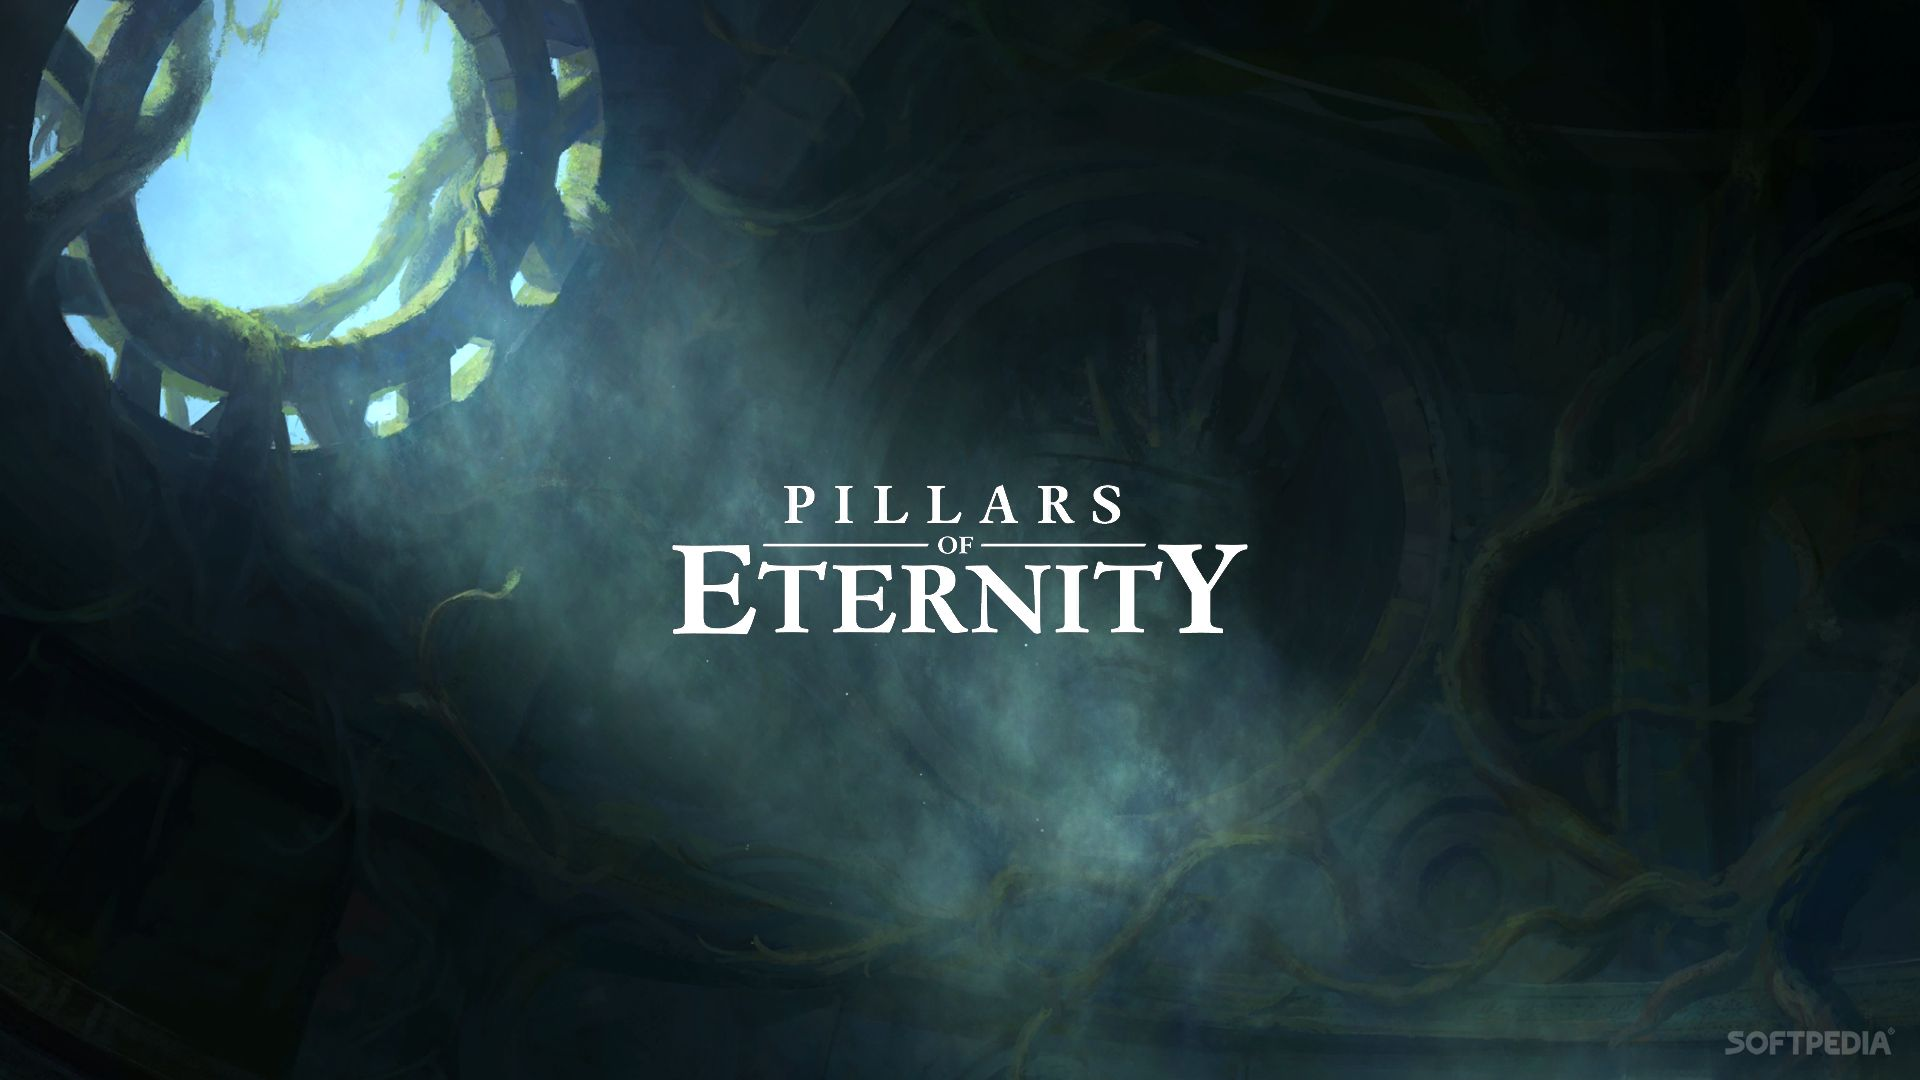 pillars of eternity wallpapers pictures images